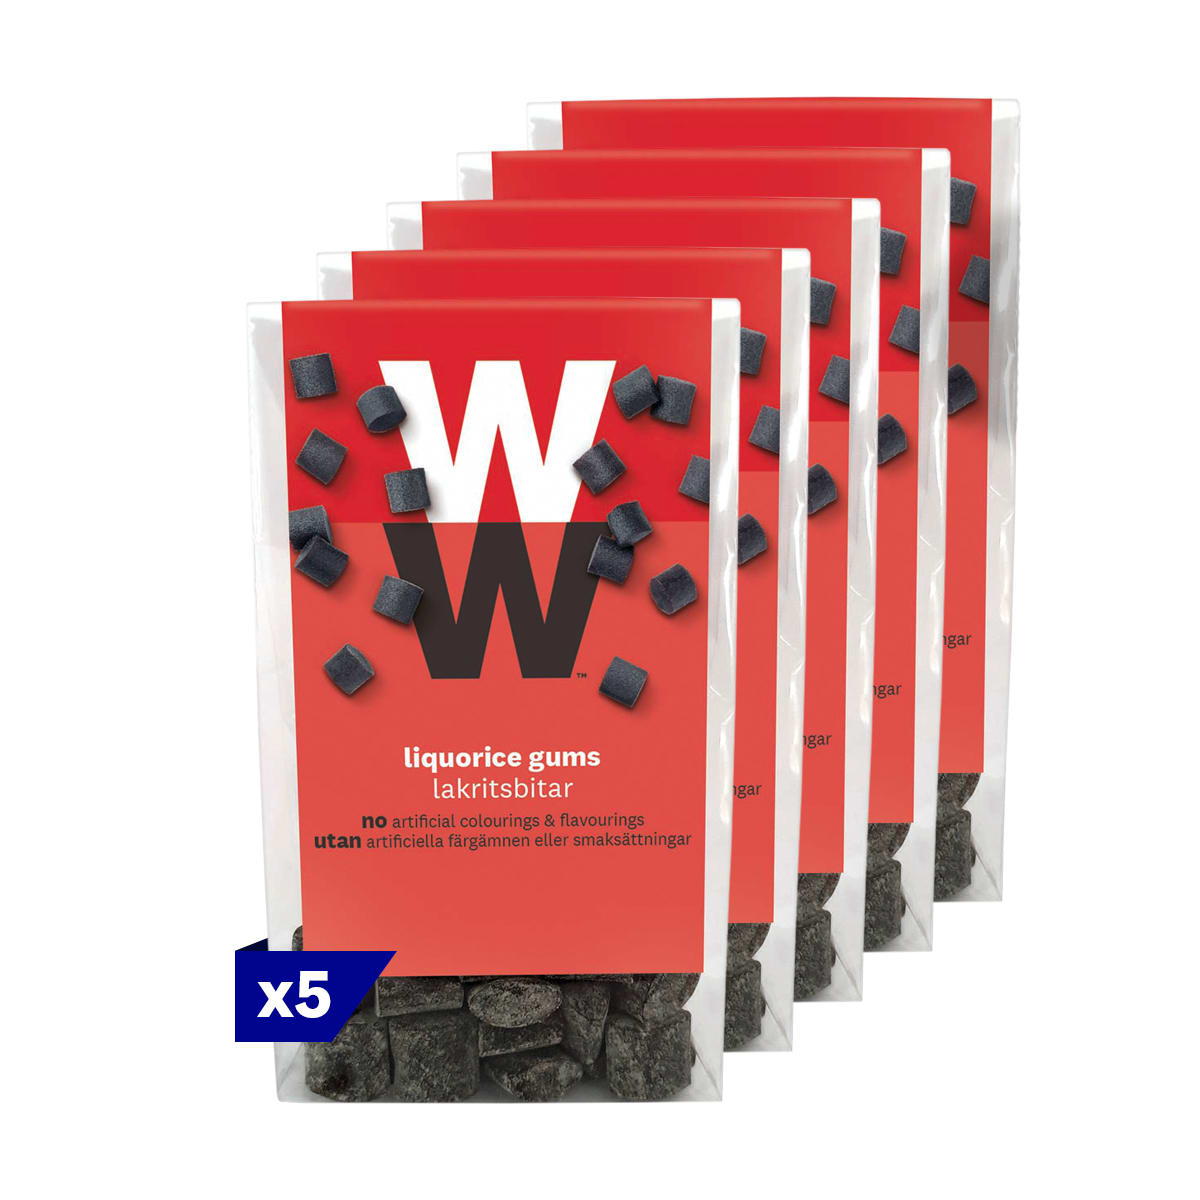 5 packs, WW Liquorice Sweets, intense liquorice flavour, 3 SmartPoints values per portion (half a bag), perfect for sharing, suitable for vegetarians